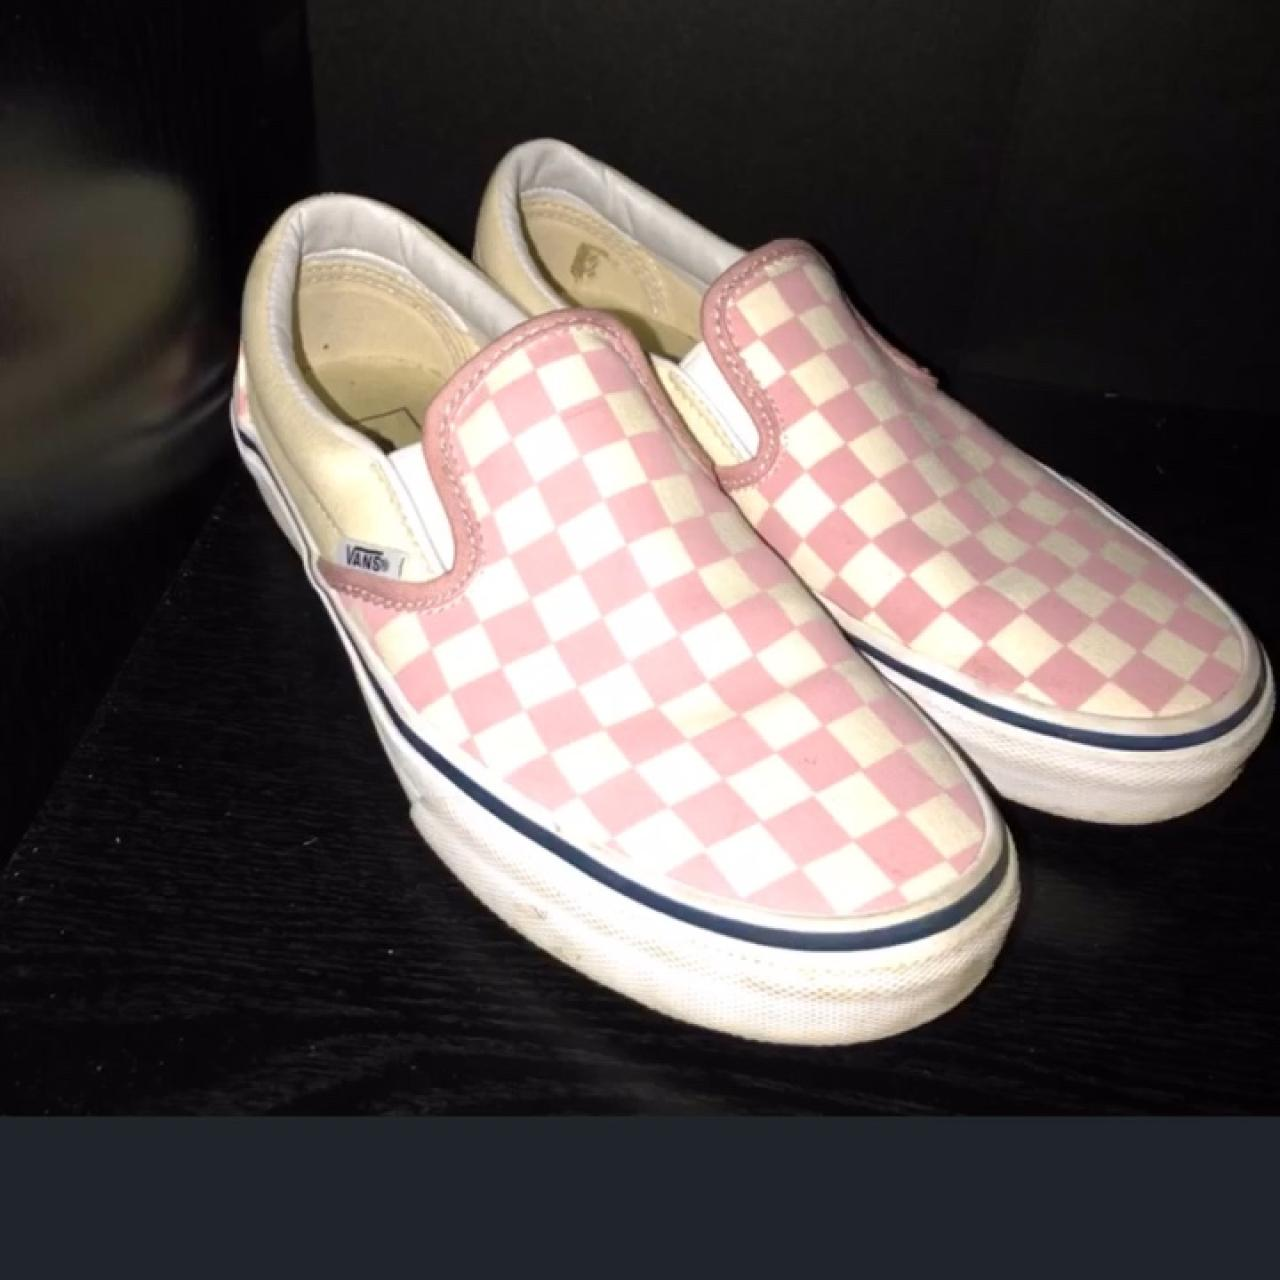 937d5a979a Zephyr Pink Checkered Slip on vans Size  Condition  a of - Depop